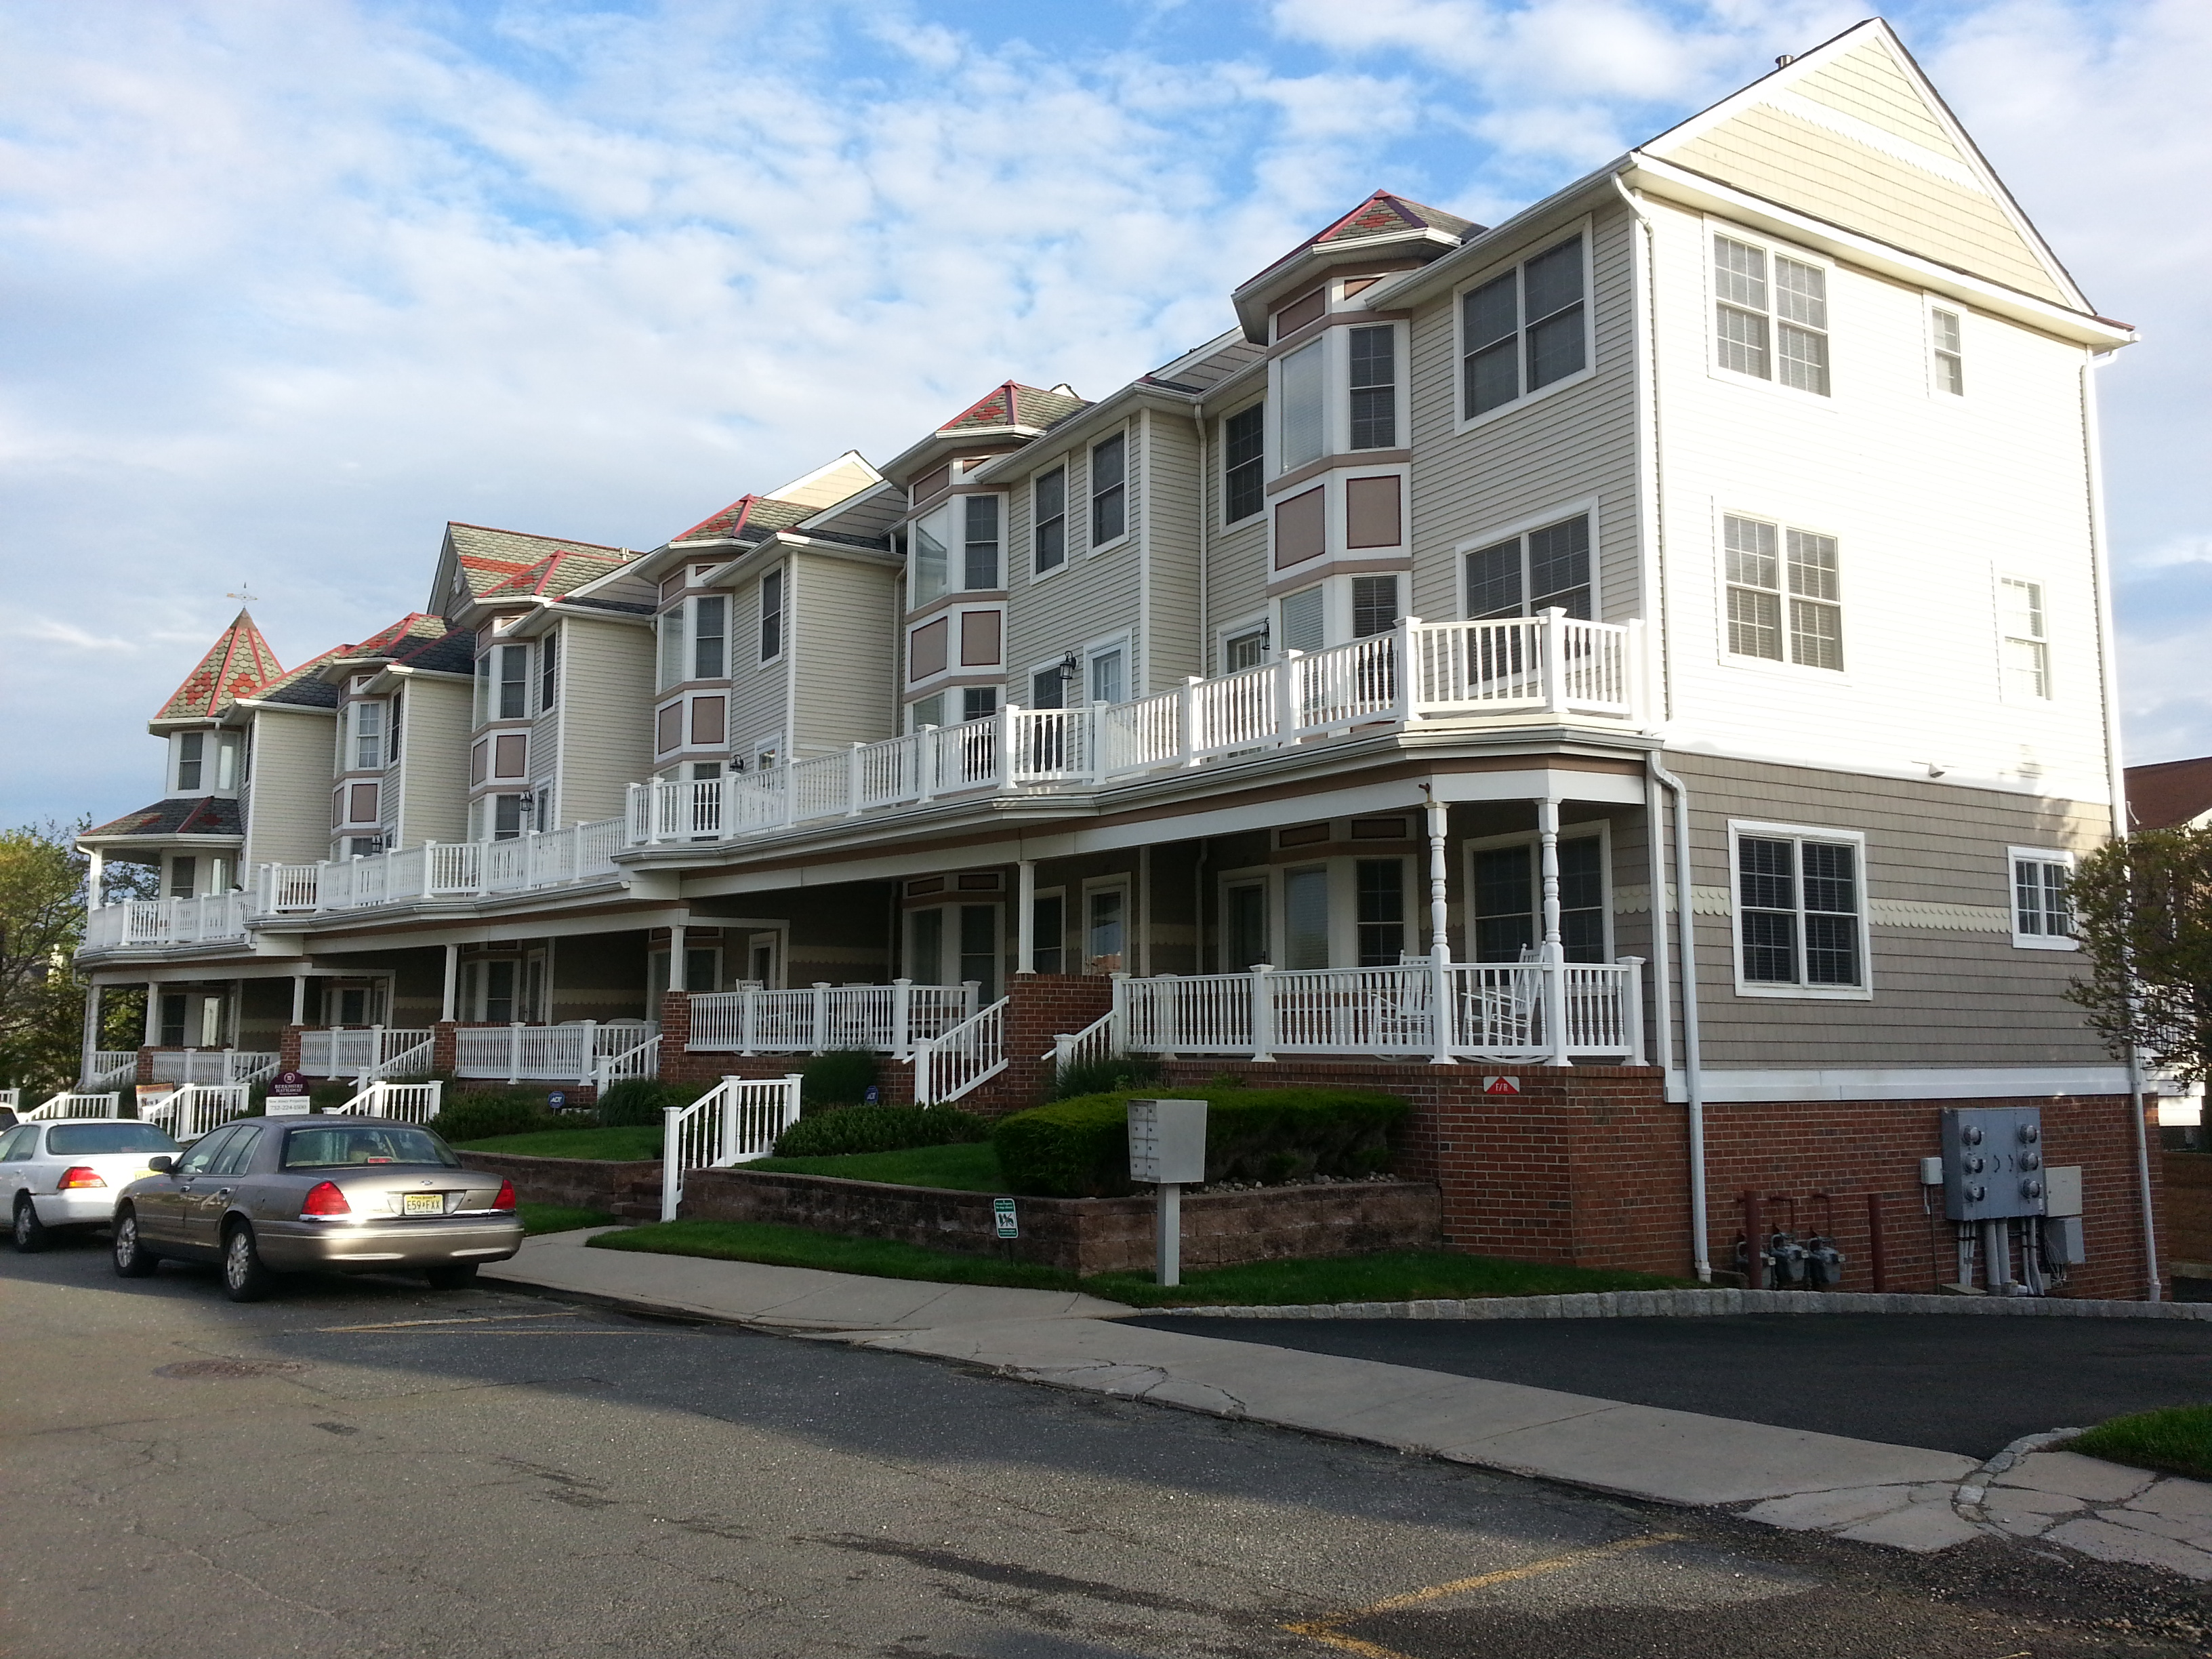 Pavilion Beach is a community of 6 townhouses at the corner of Ocean Blvd. and Pavilion Ave.